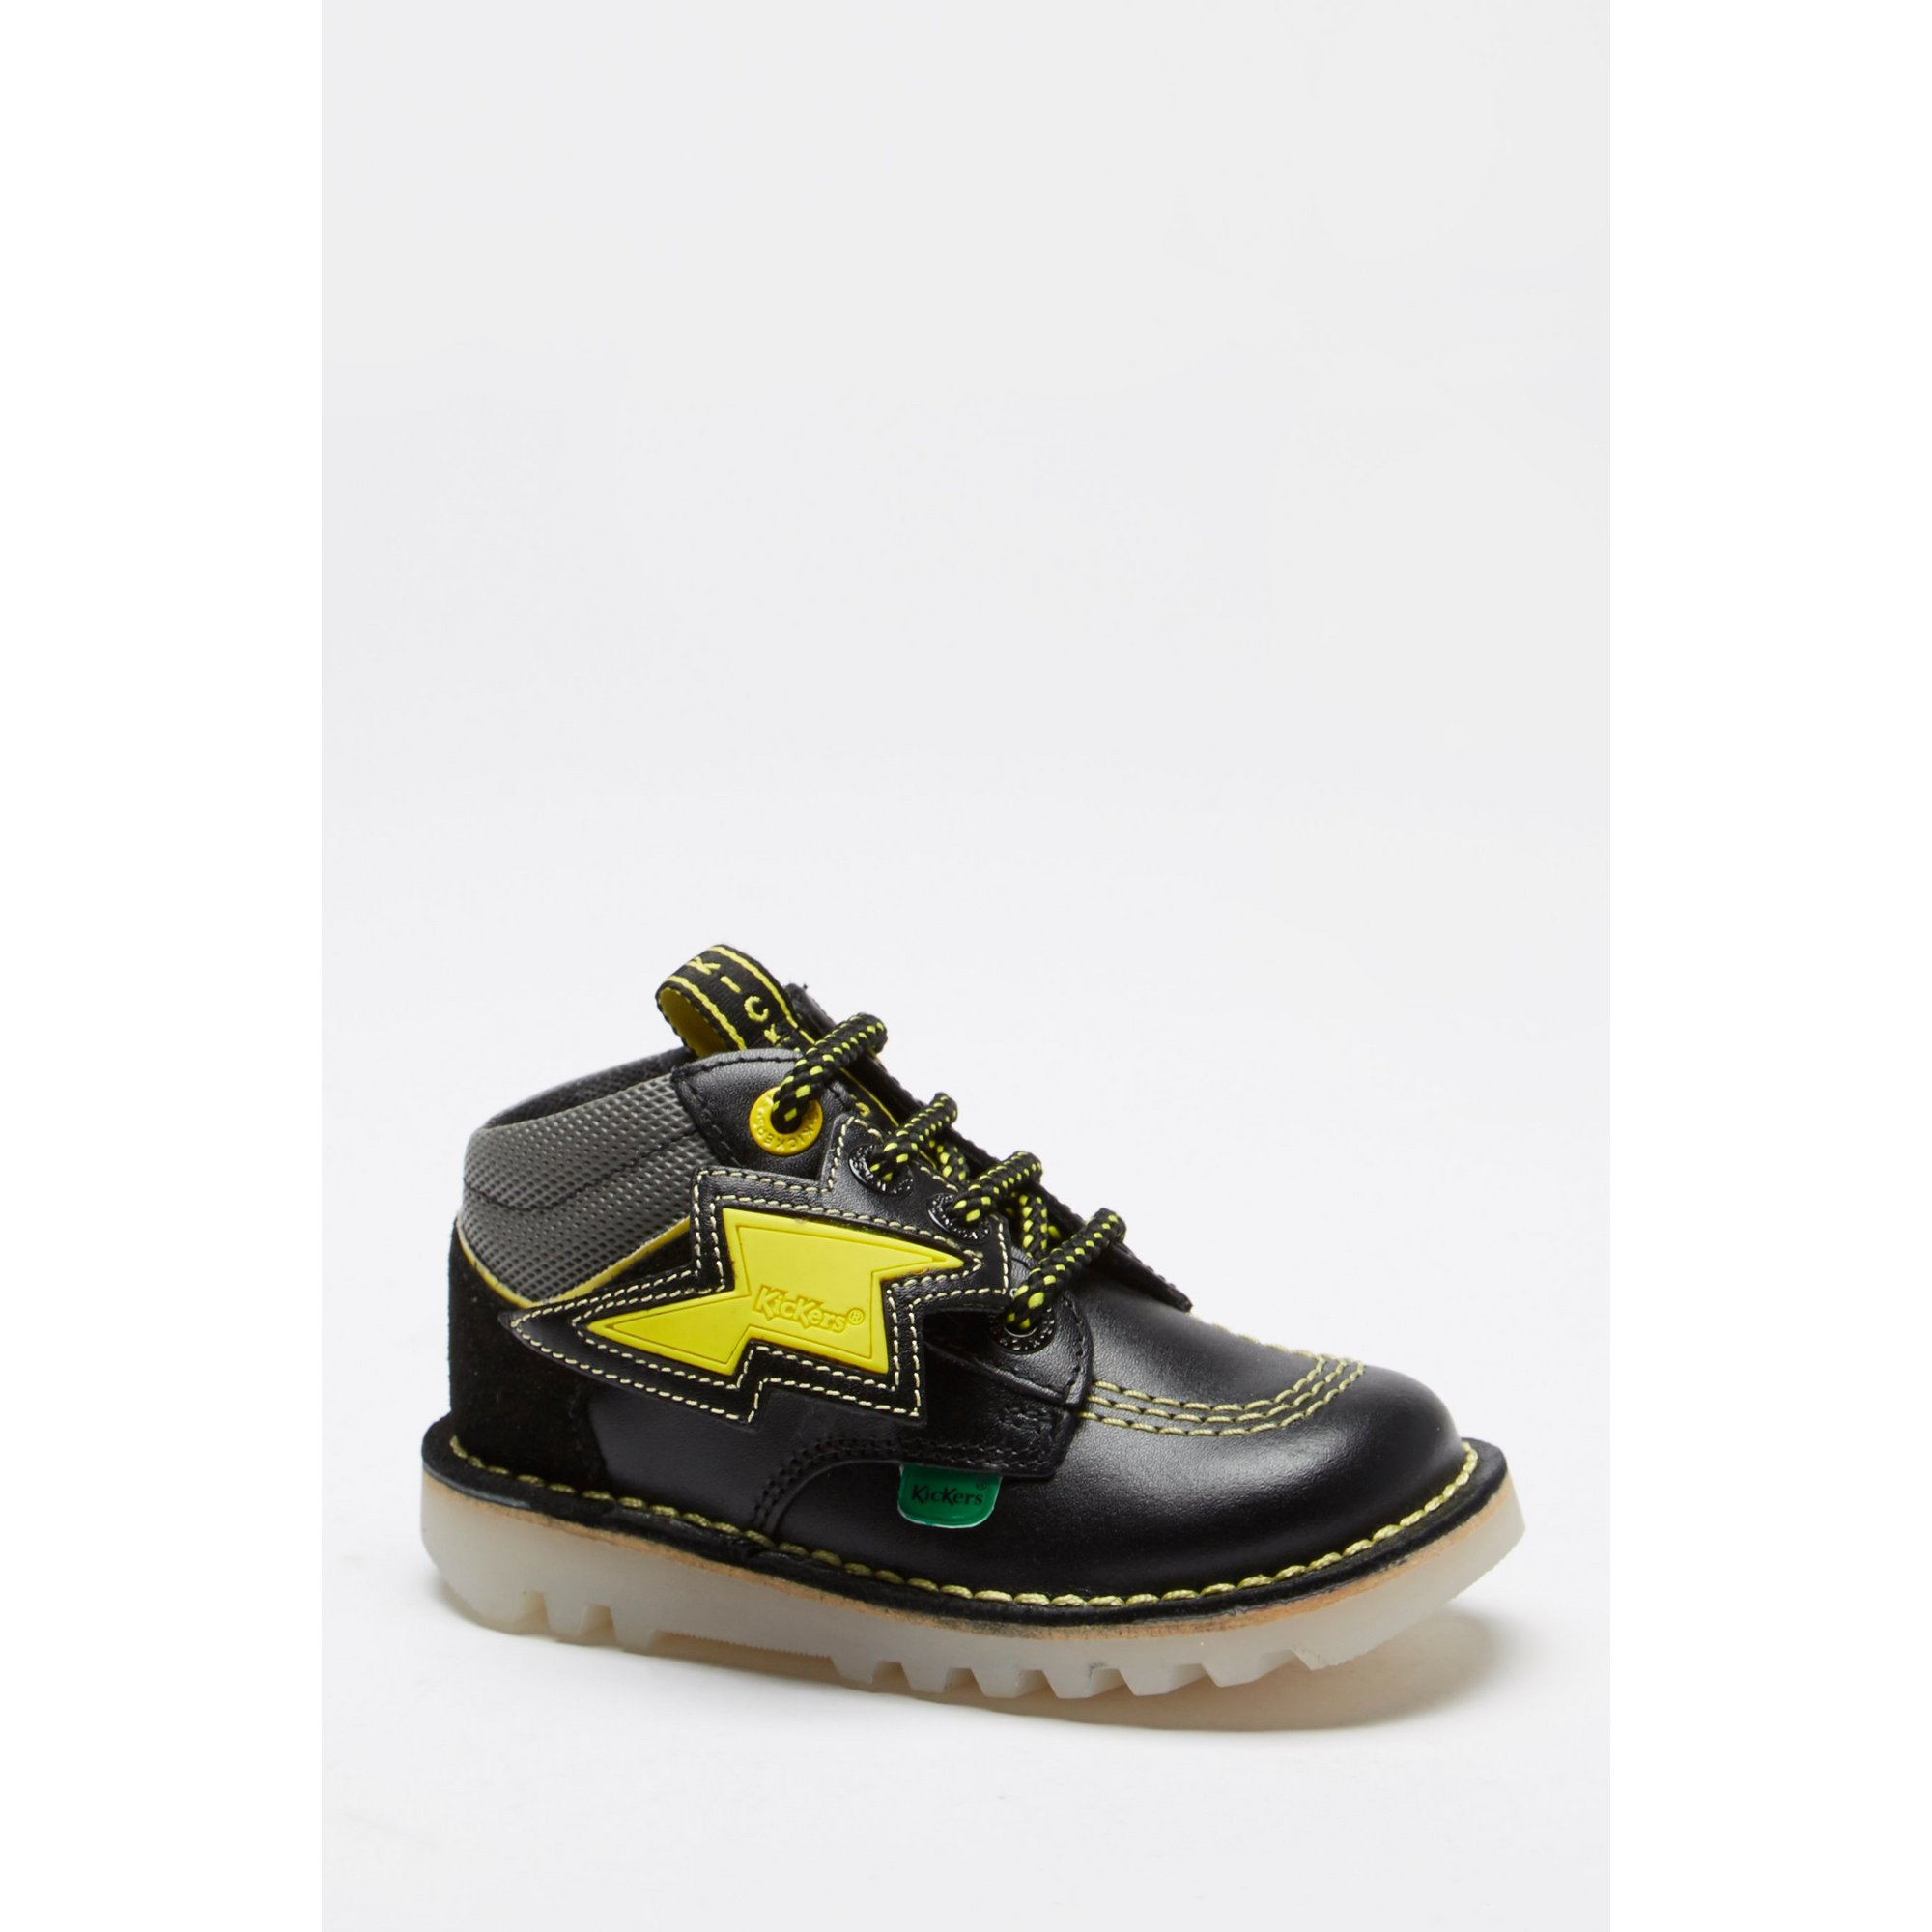 Image of Kickers Trukka Bolt Leather Boots